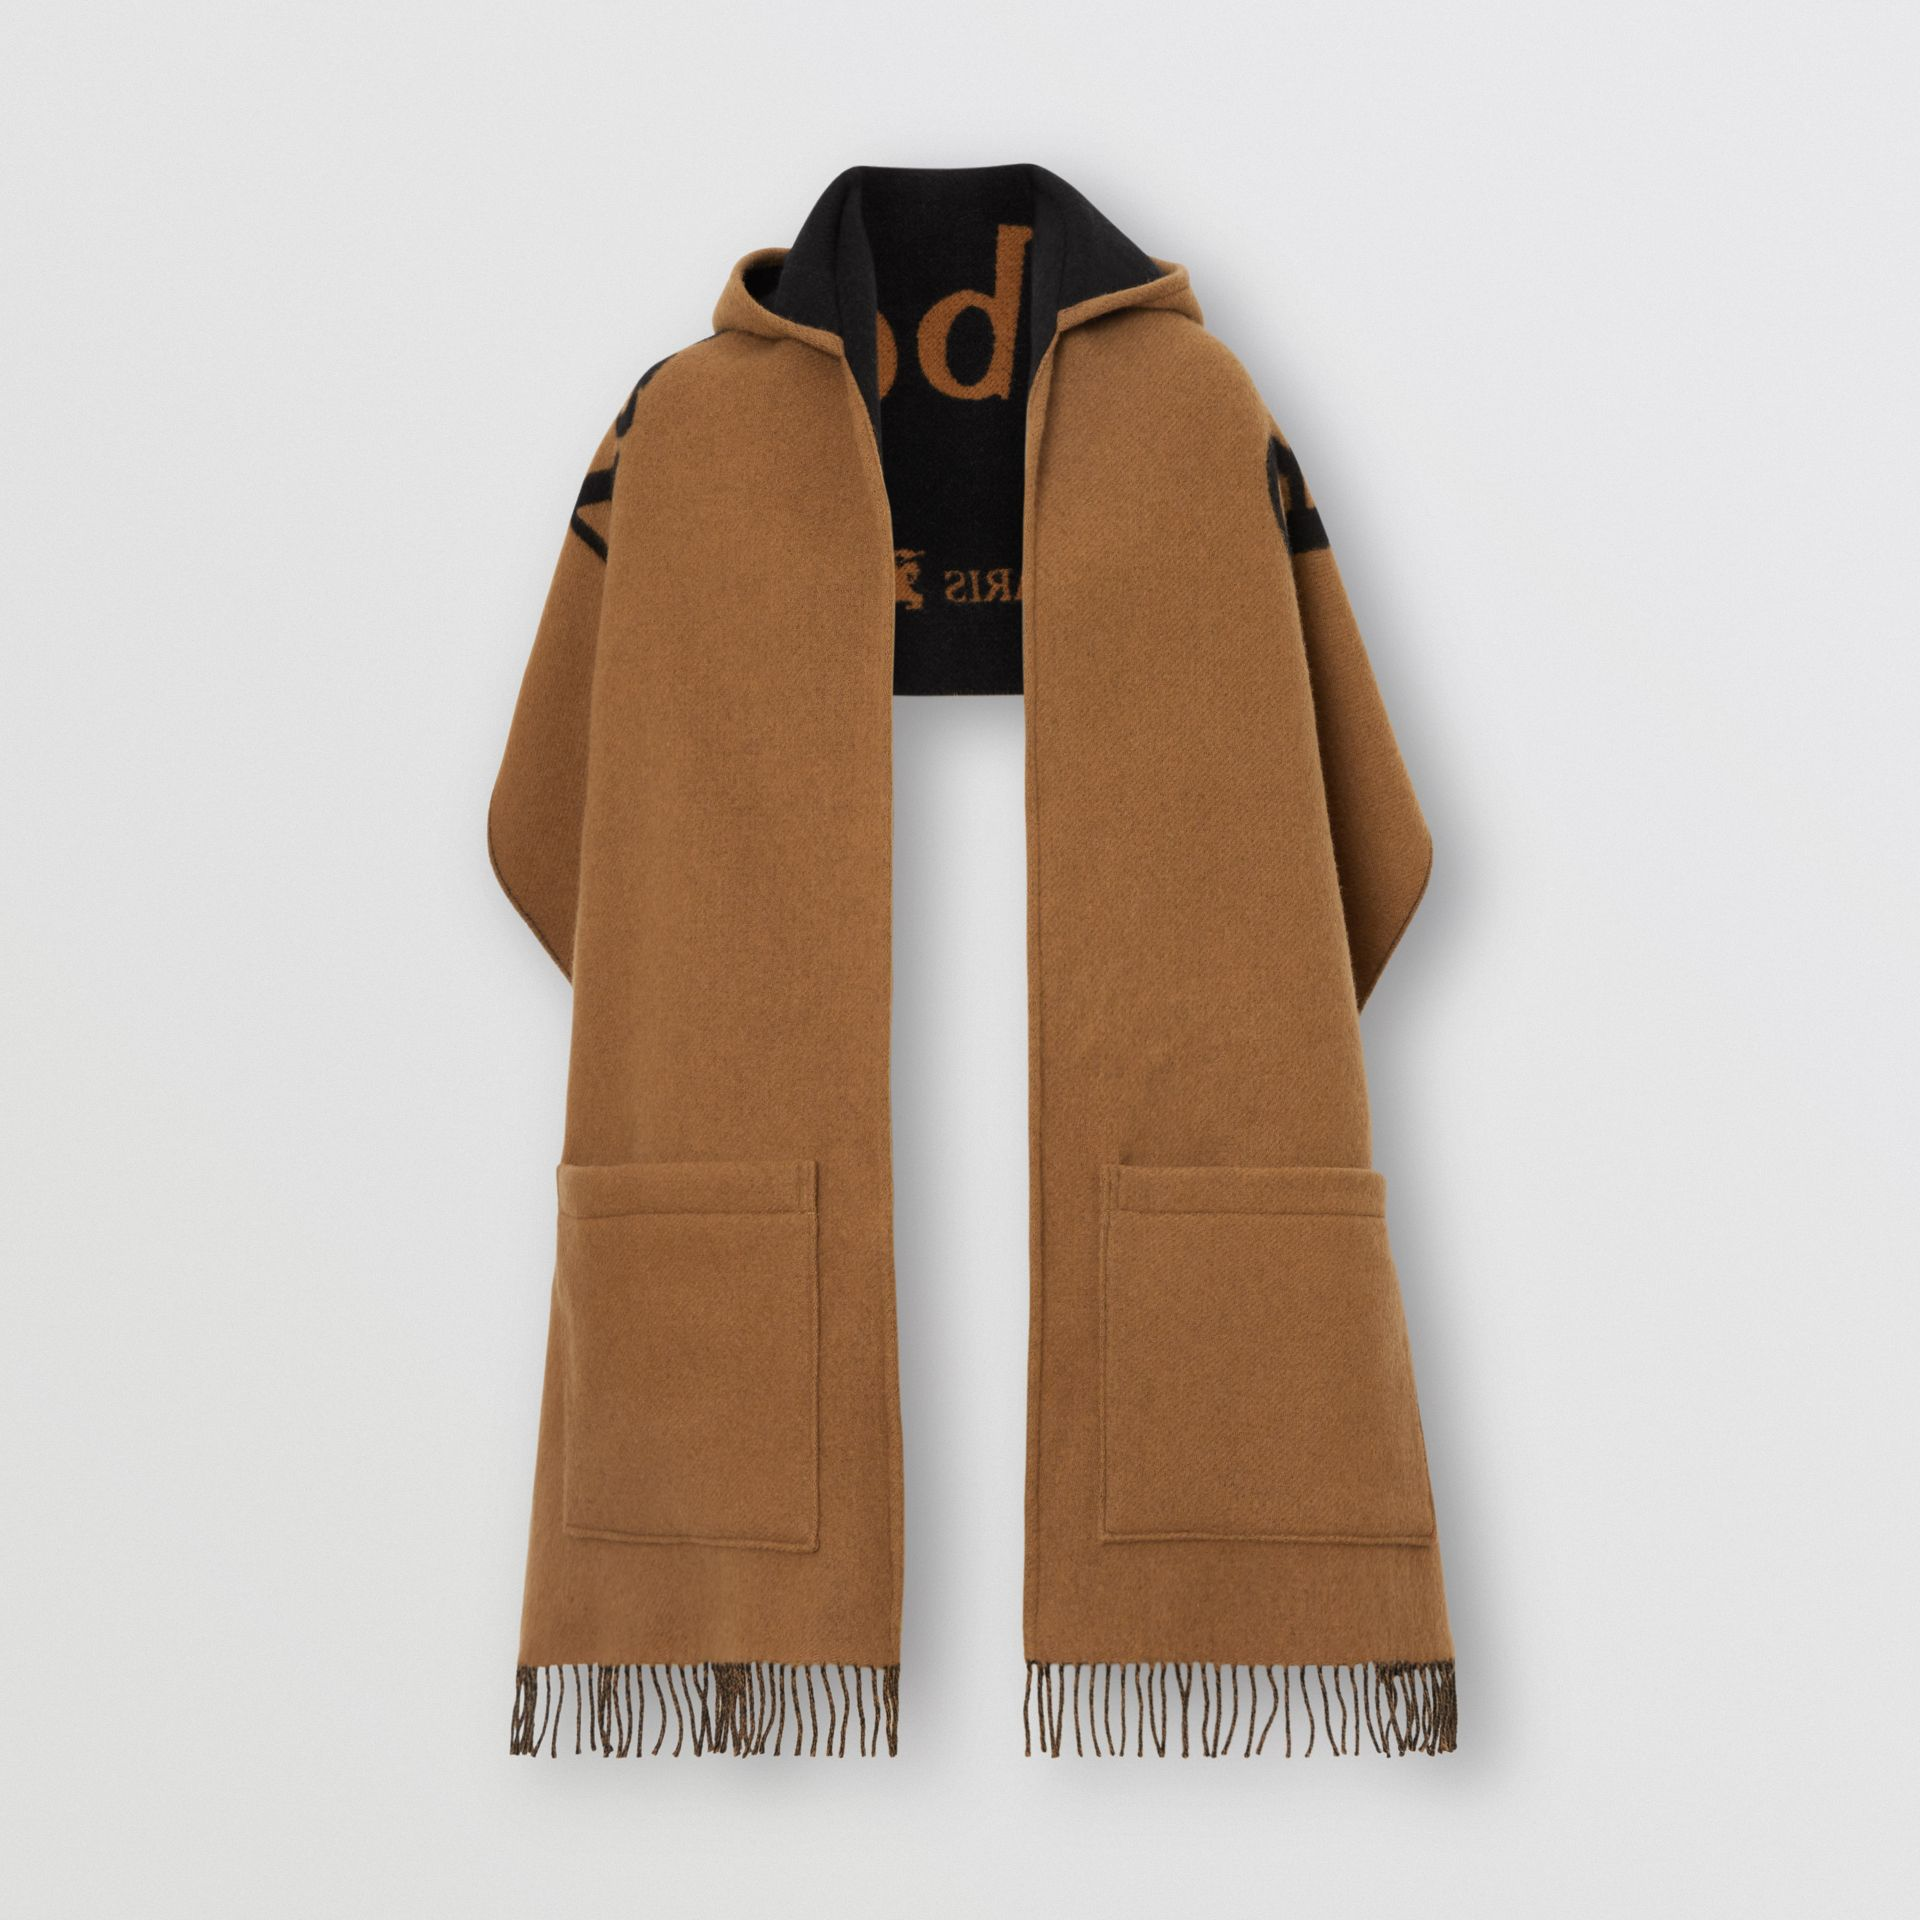 Archive Logo Wool Cashmere Hooded Scarf in Hazelnut - Women | Burberry United Kingdom - gallery image 3